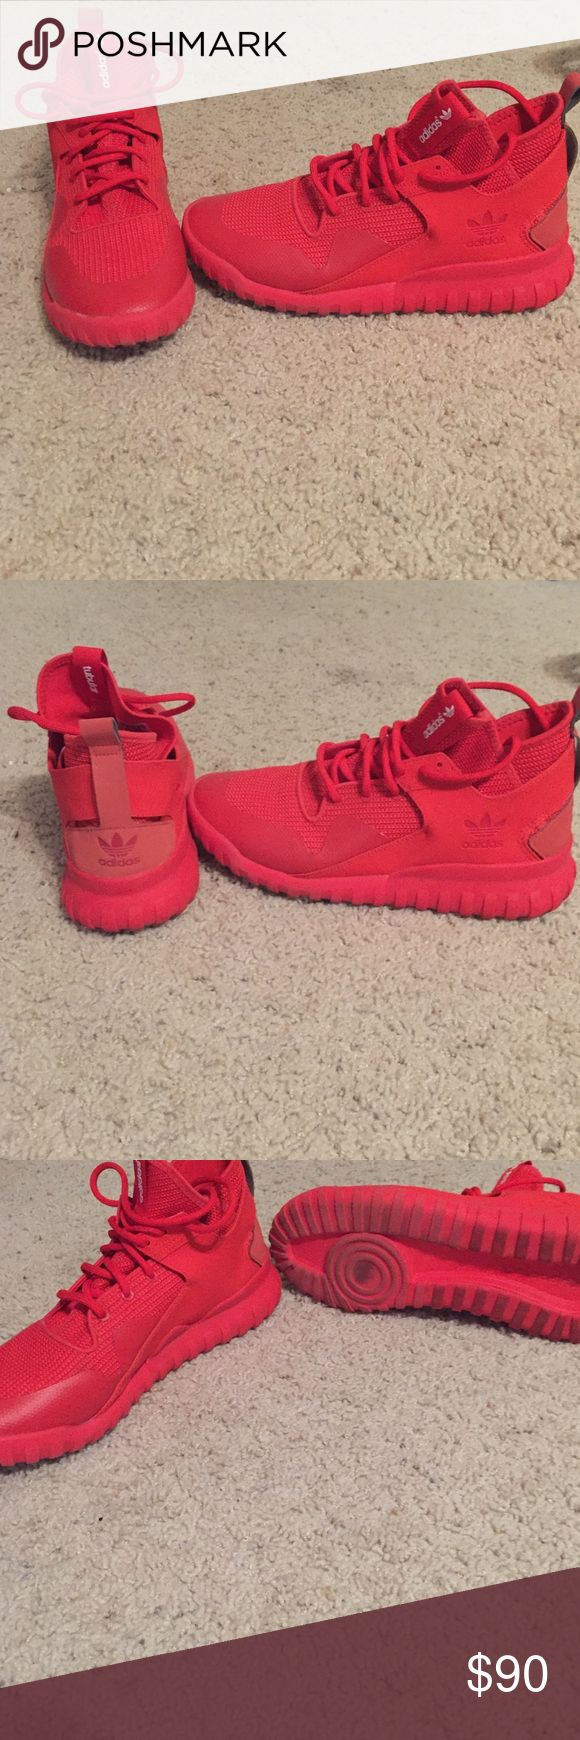 All red adidas tubular high tops Great condition worn twice but still look brand new just dirty on bottom Adidas Shoes Athletic Shoes